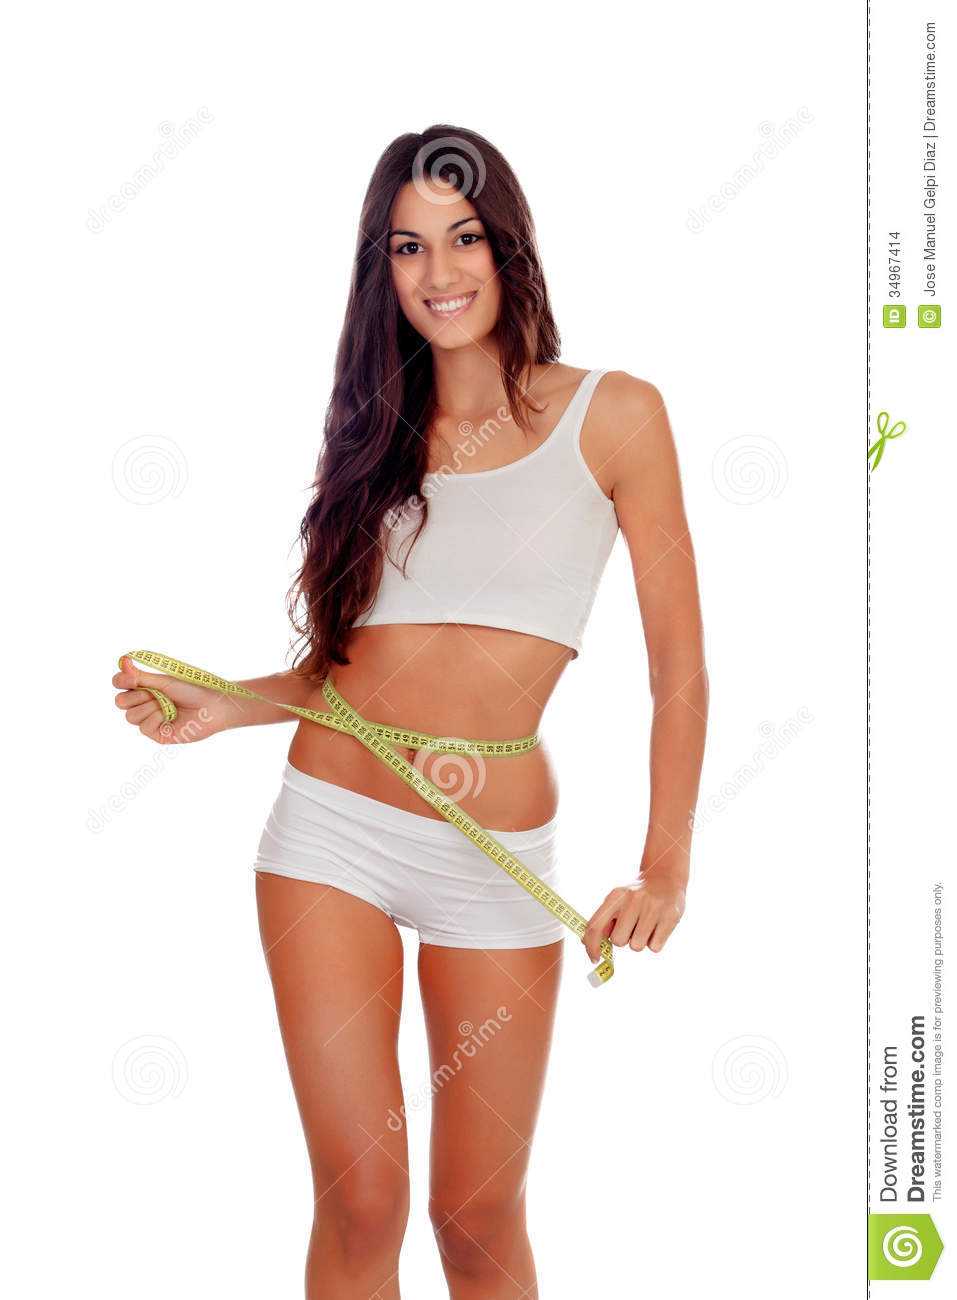 Girl In White Underwear With A Tape Measure Around Her